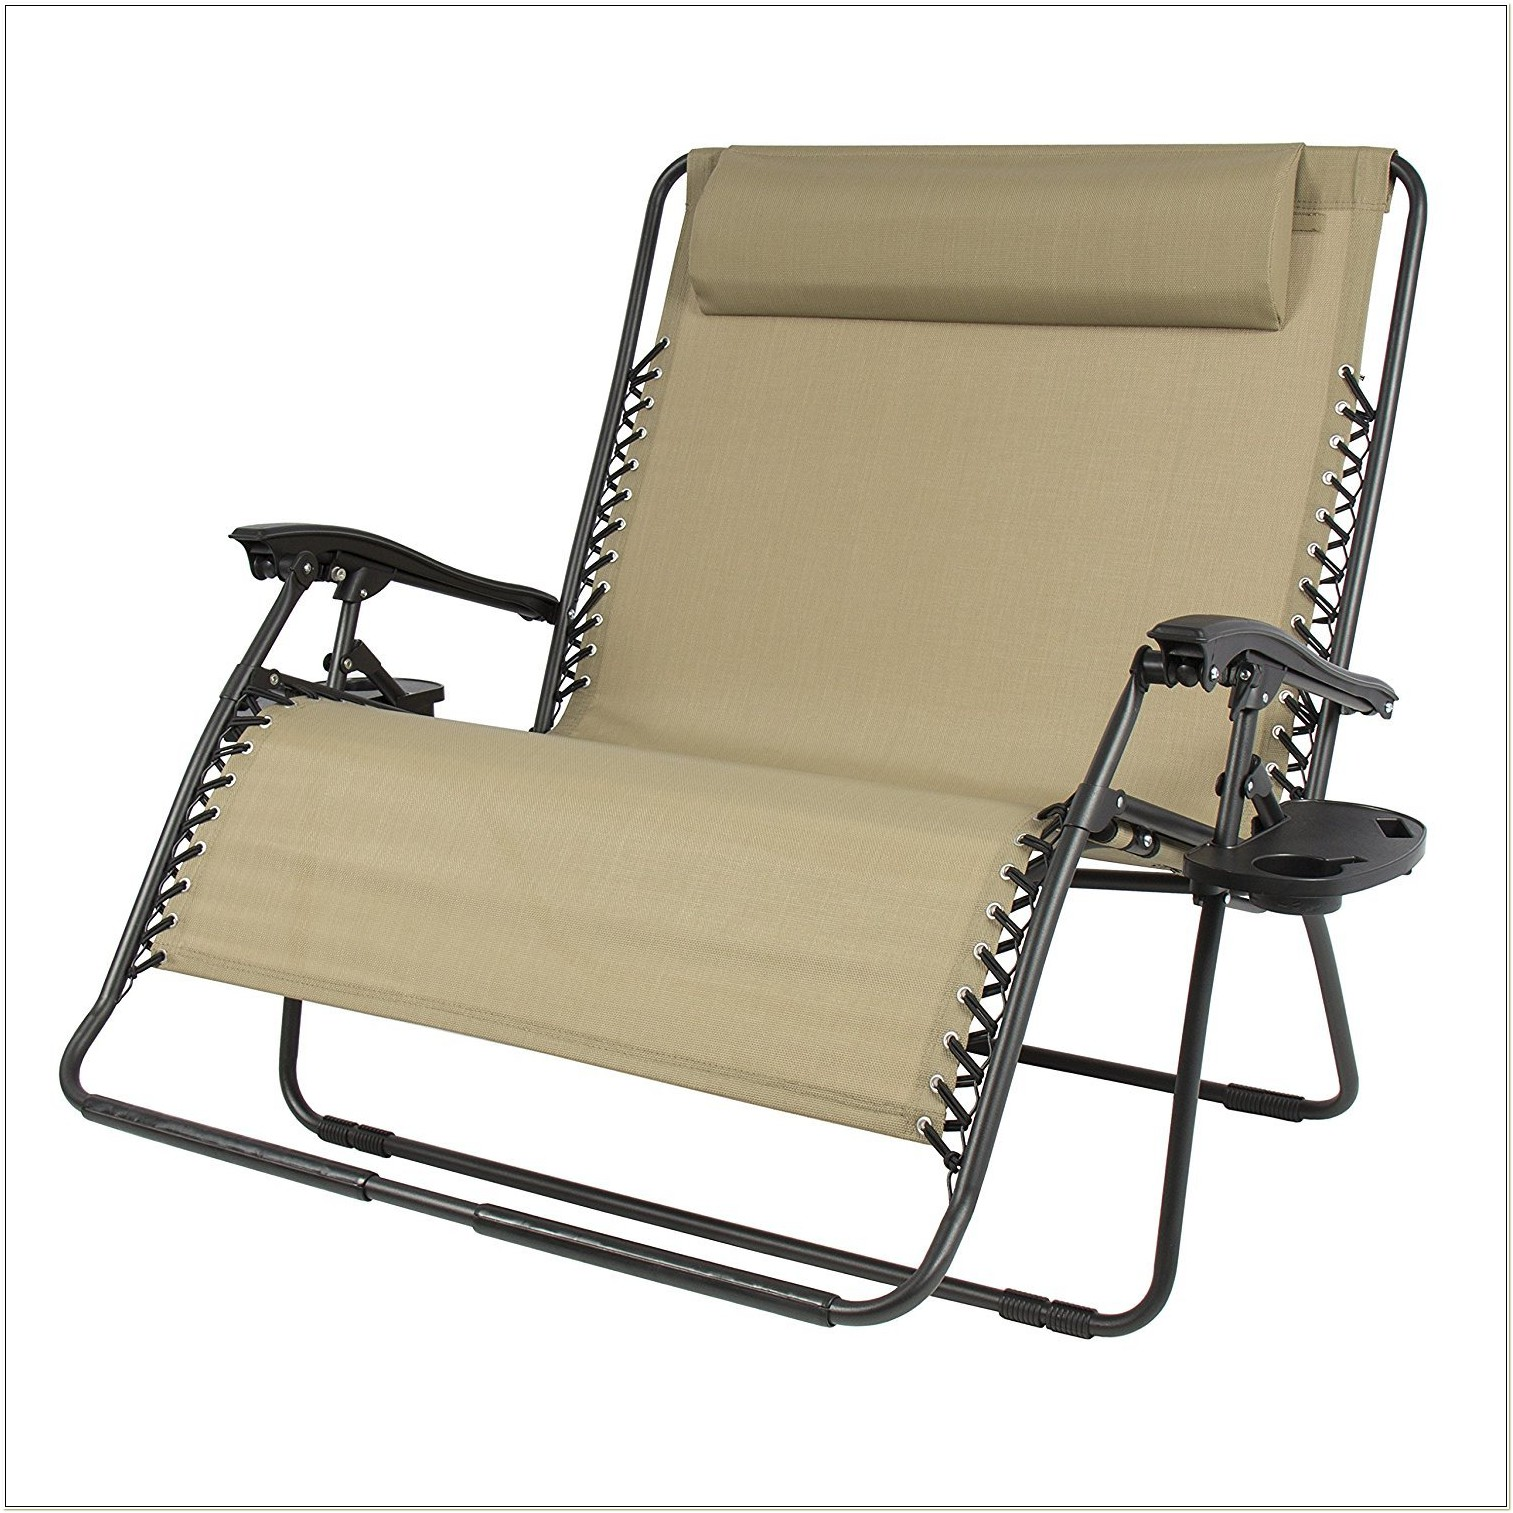 Anti Gravity Lounge Chair With Cup Holder